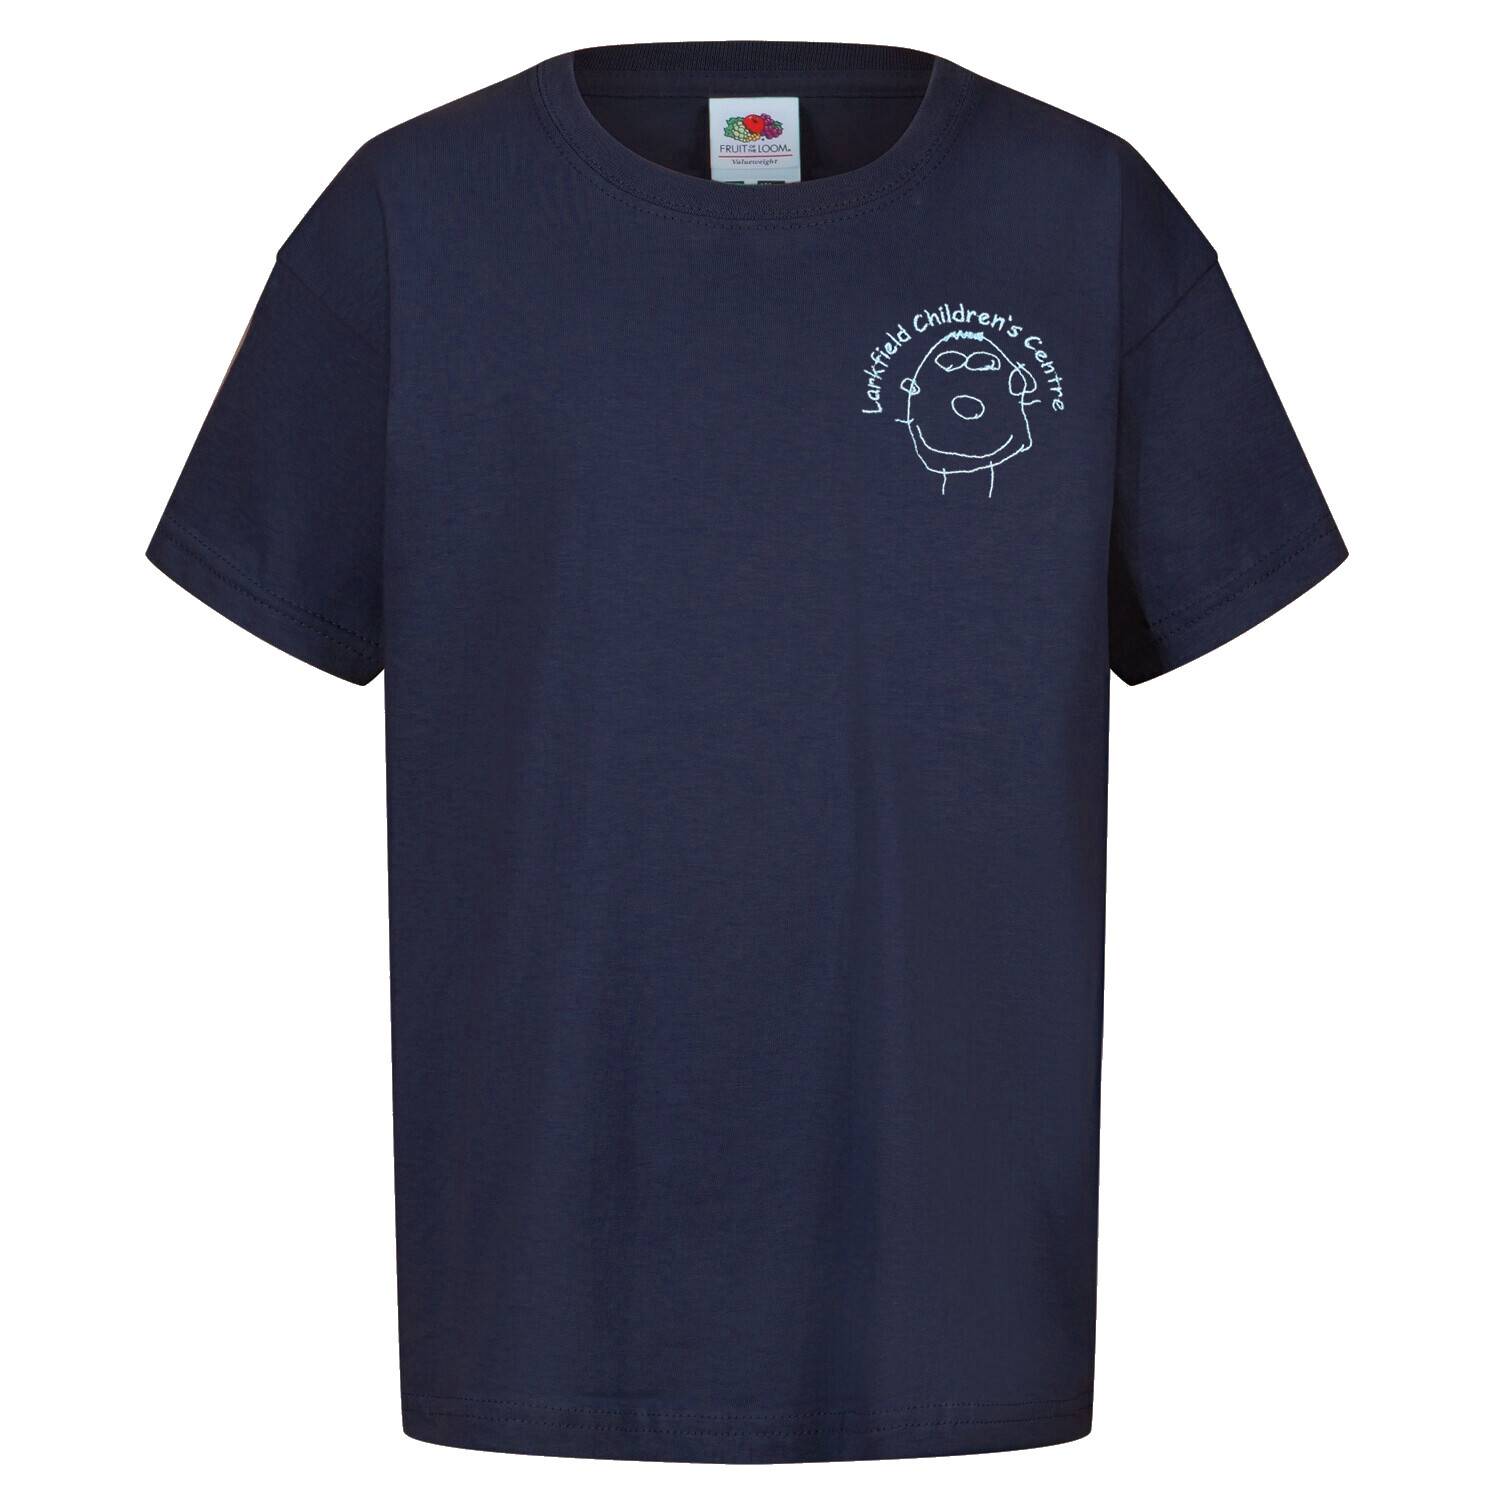 Larkfield Childrens Centre Nursery Staff T-Shirt (Unisex) (RCS5000)